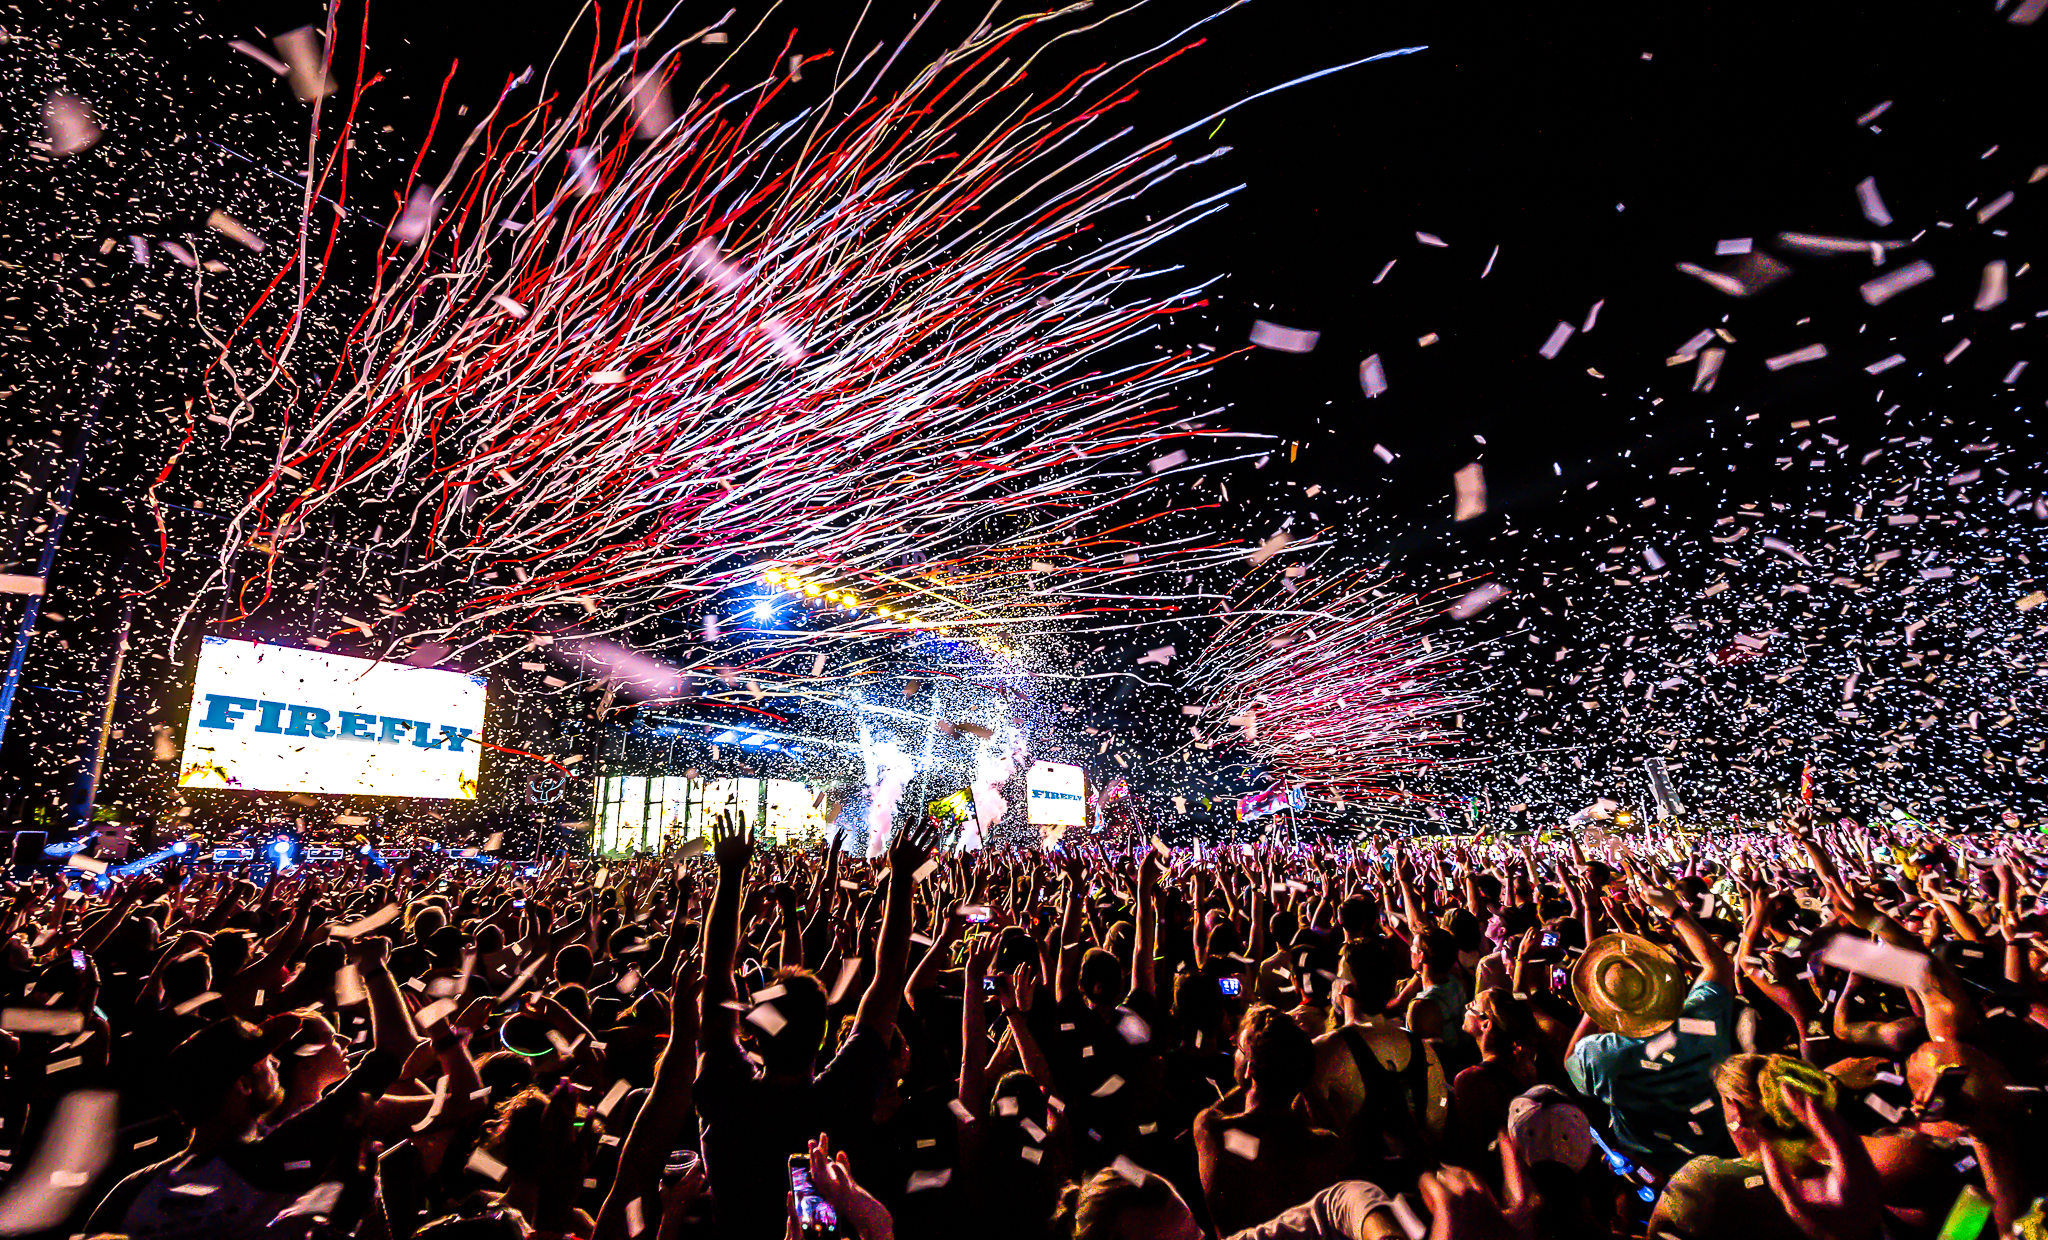 Firefly Music Festival takes place from June 14-17, 2018 at the Woodlands of Dover International Speedway in Dover, DE. Tickets for the festival go on sale Friday, January 12 at 10 a.m., and general admission passes start at $269.{ } (Image: aLIVE Coverage)